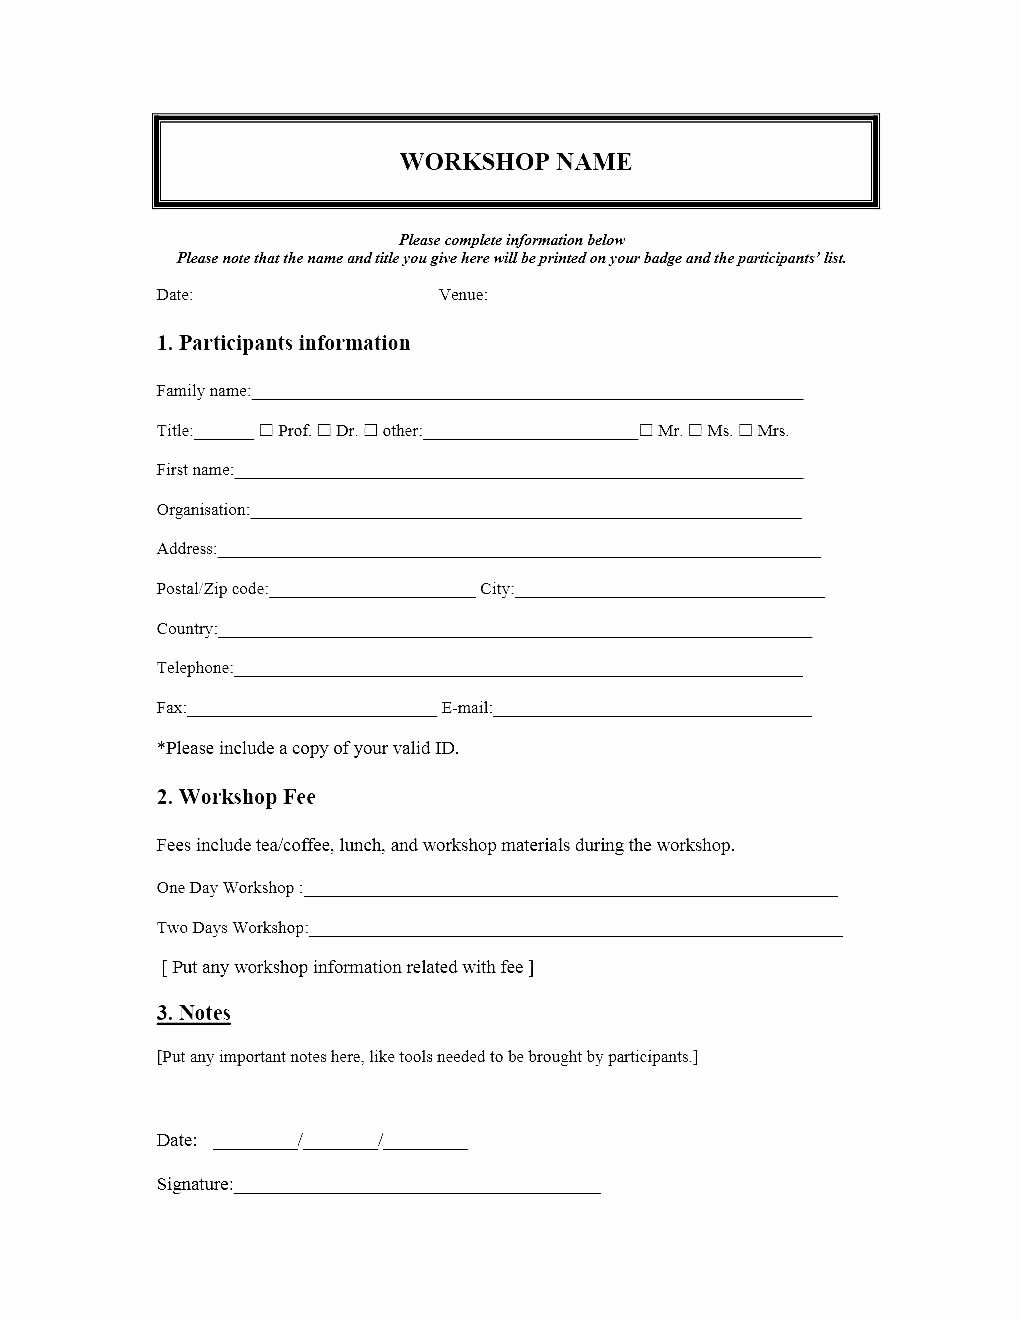 Event Registration form Template Word Lovely event Registration form Template Microsoft Word